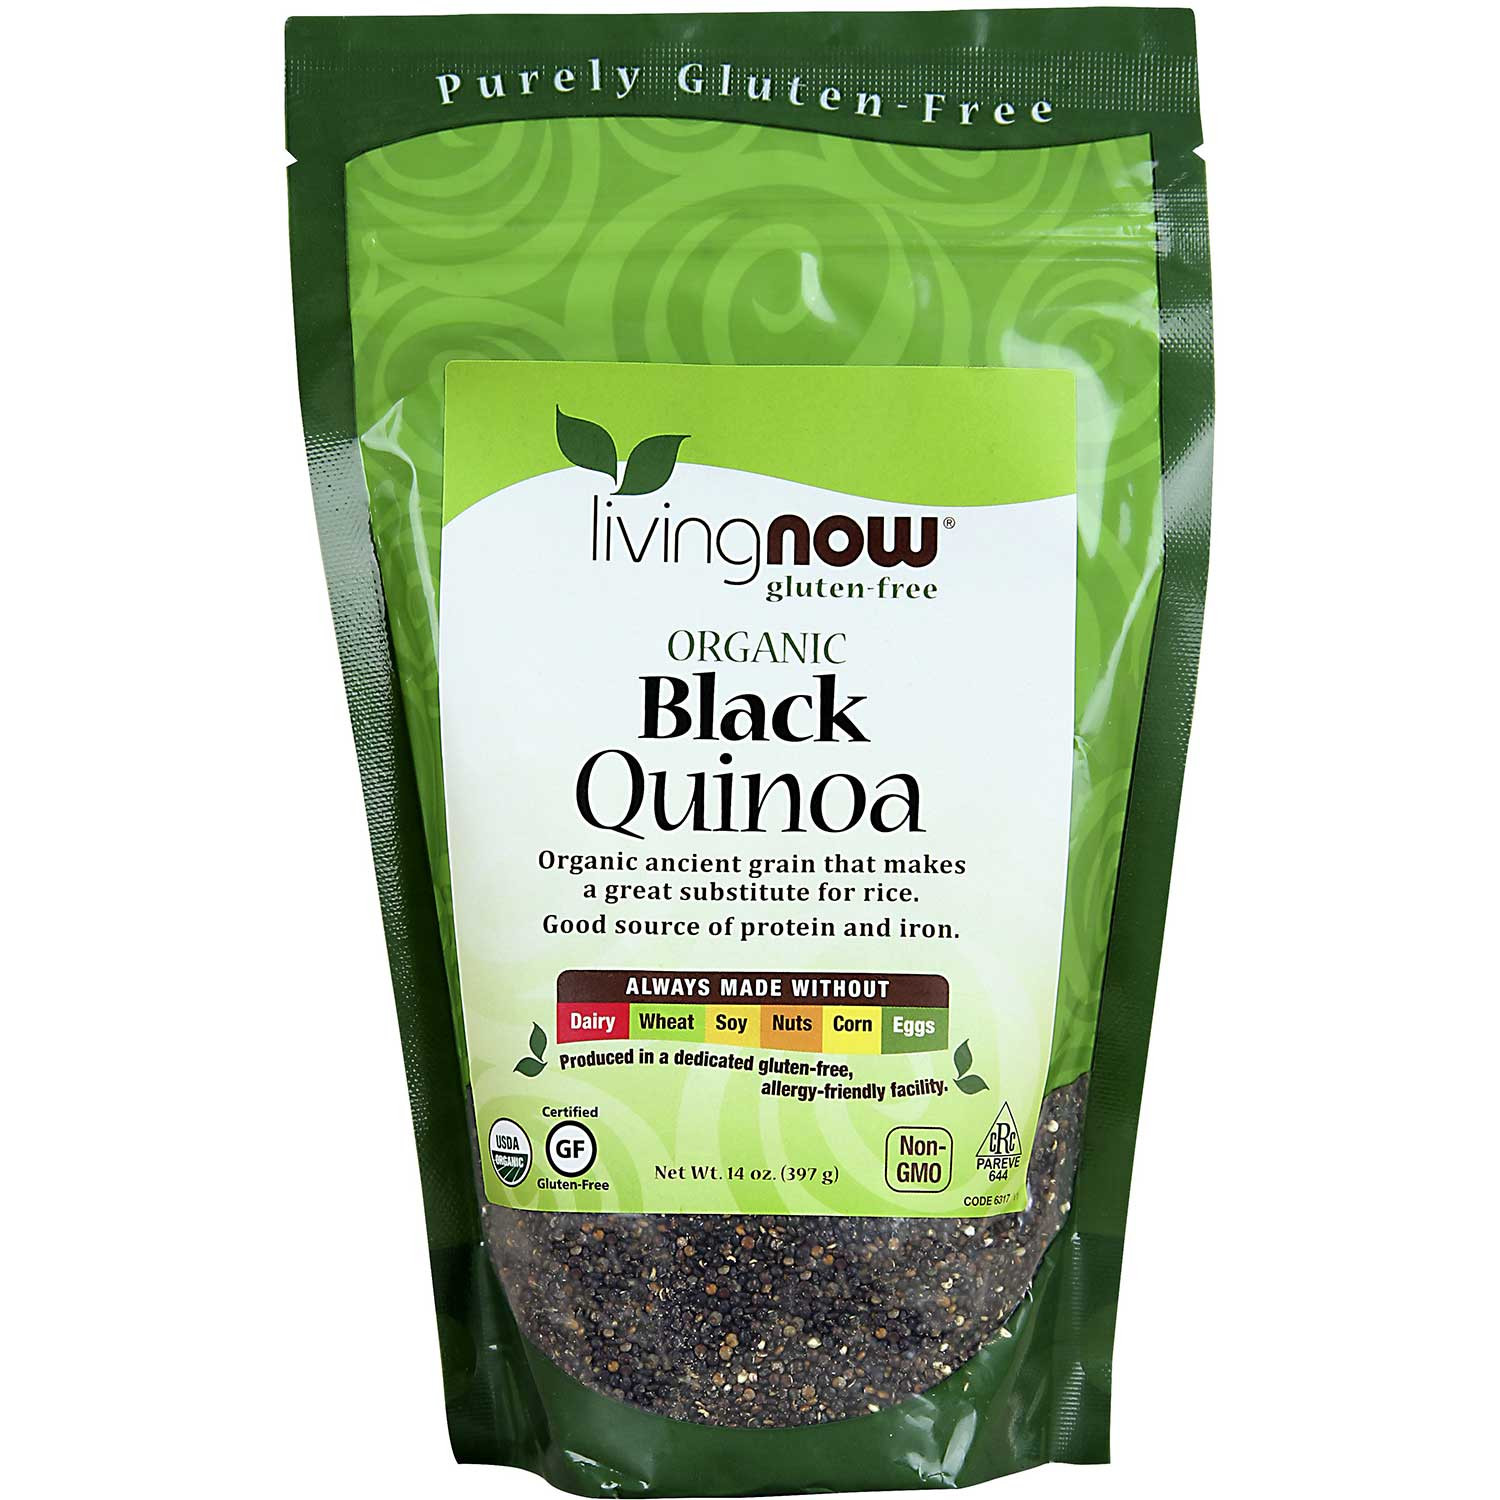 NOW Living NOW Organic Quinoa Grain - Black, 397g